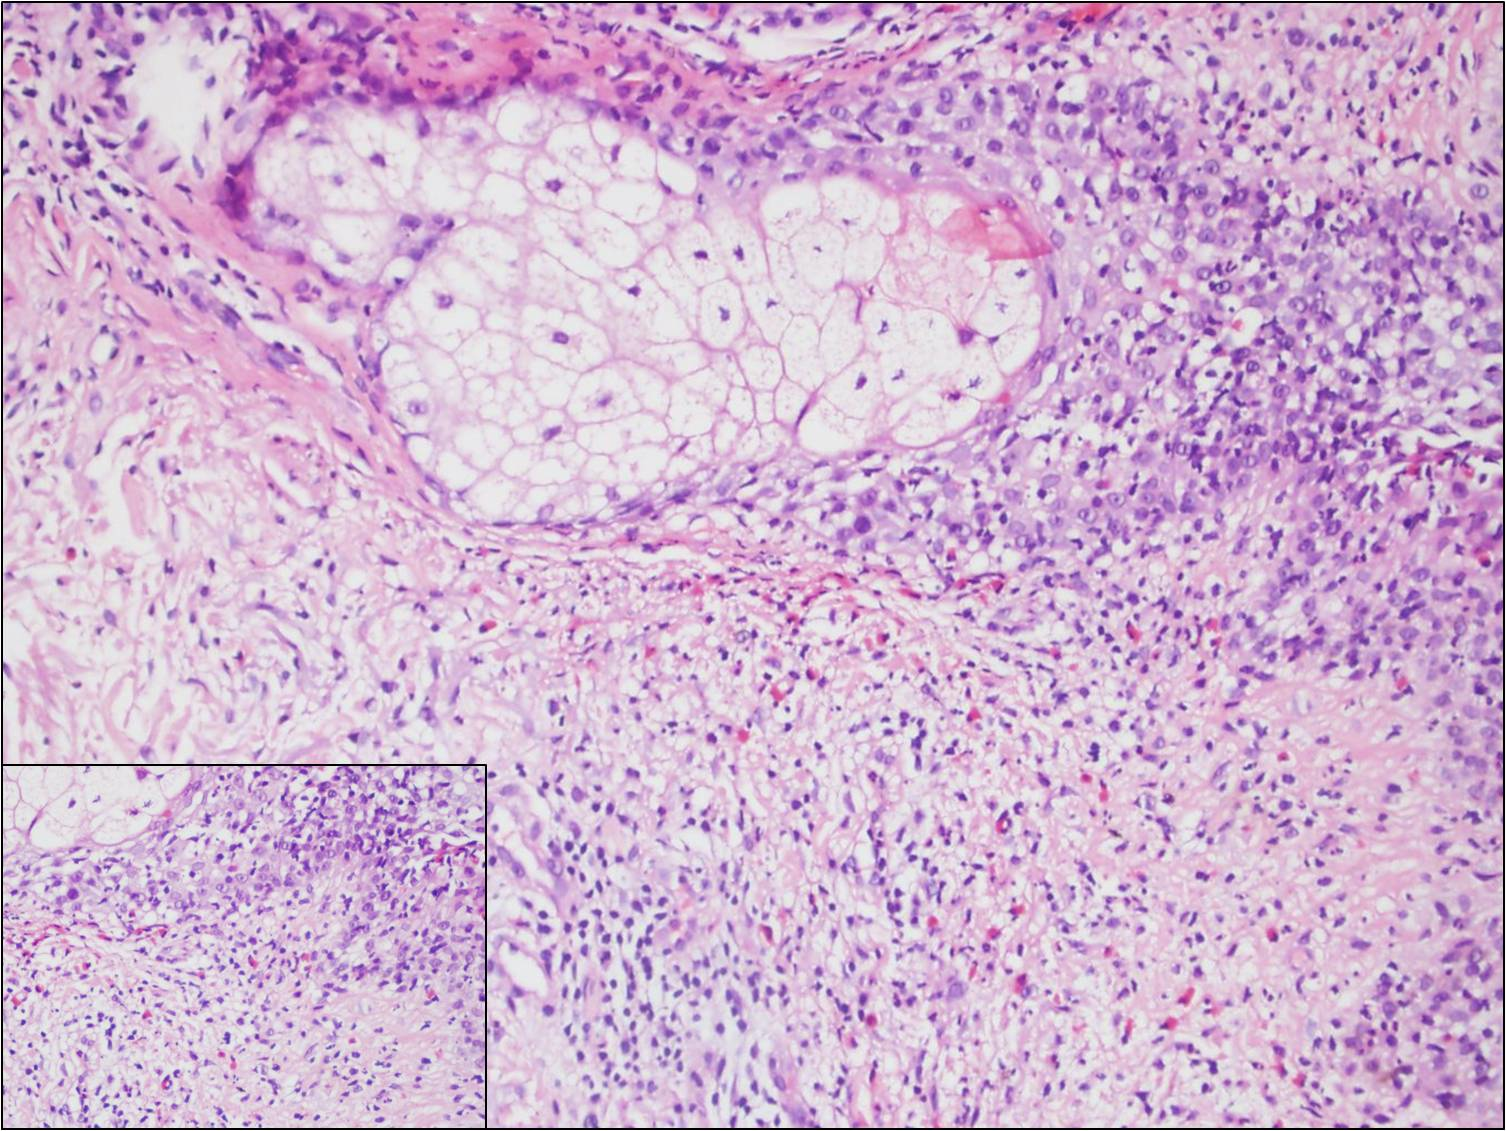 Eosinophilic pustular dermatosis with concomitant polycytemia vera: a case report figure 3